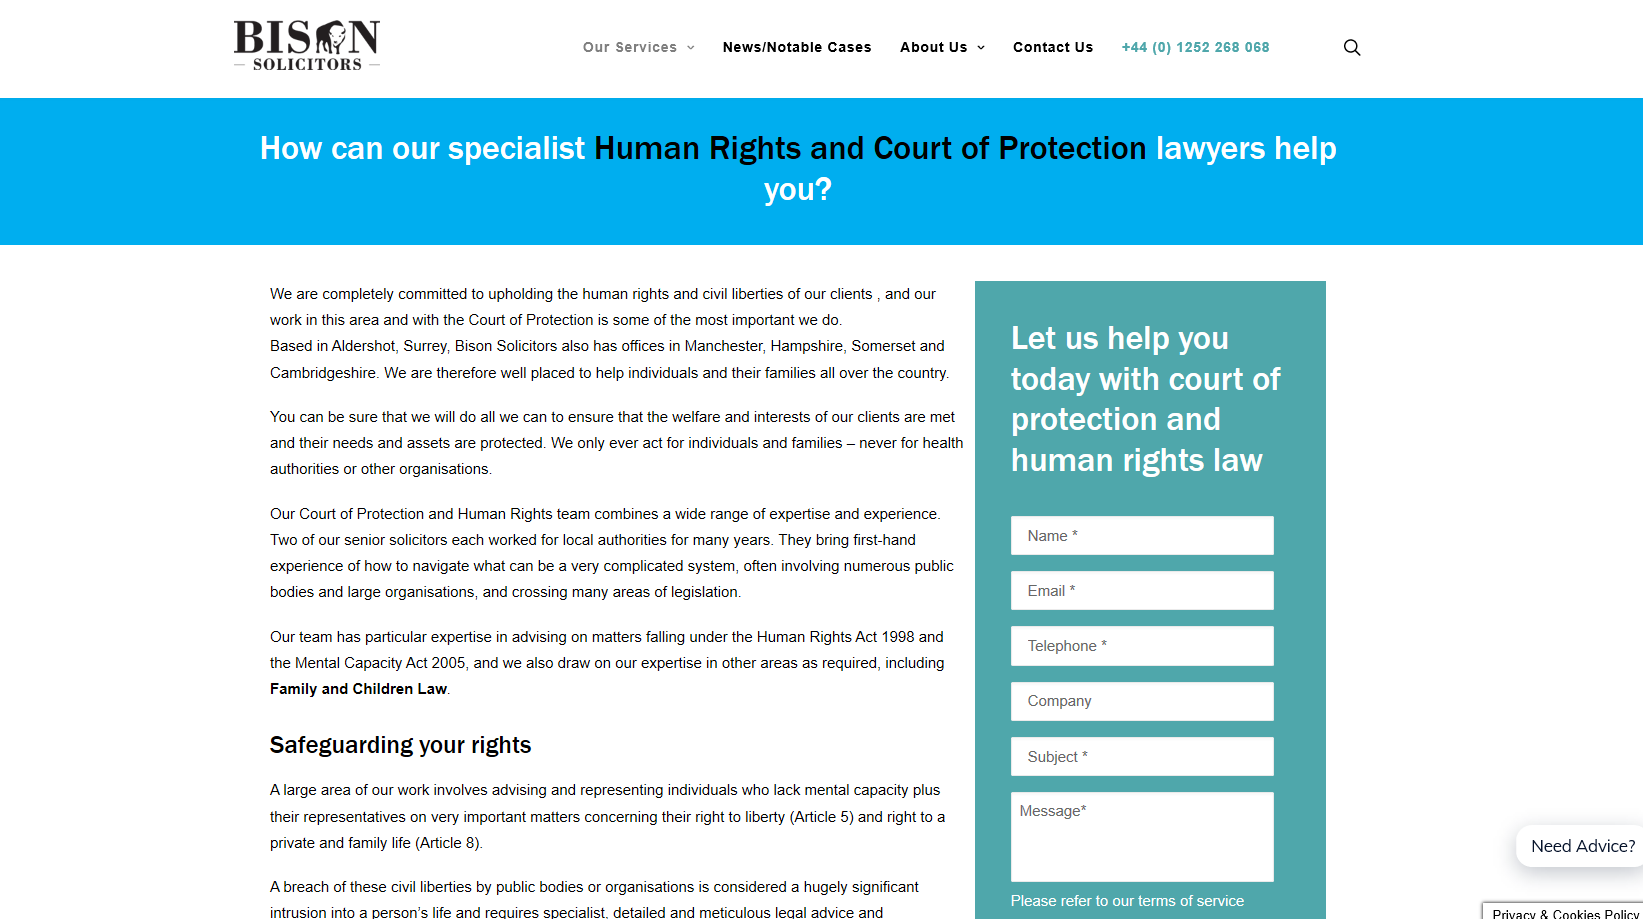 Bison Solicitors - immigration lawyers web page